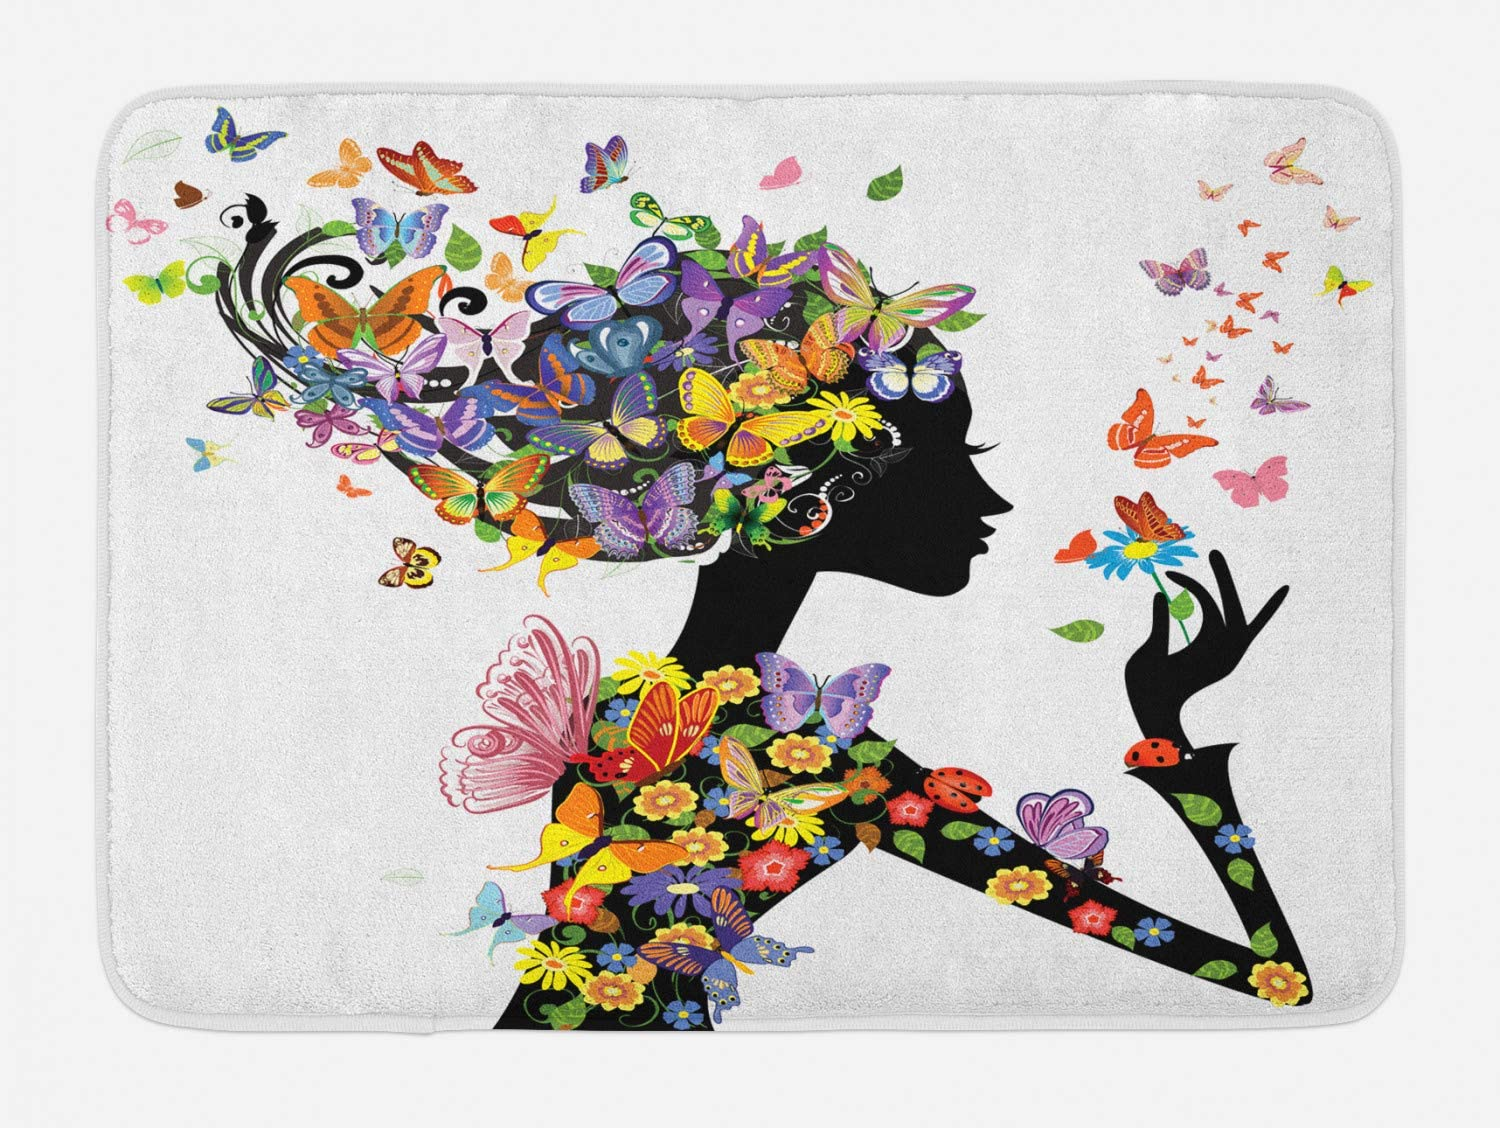 Ambesonne Butterflies Bath Mat, Girl Fashion Flowers with Butterflies Ornamental Floral Foliage Nature Forest, Plush Bathroom Decor Mat with Non Slip Backing, 29.5